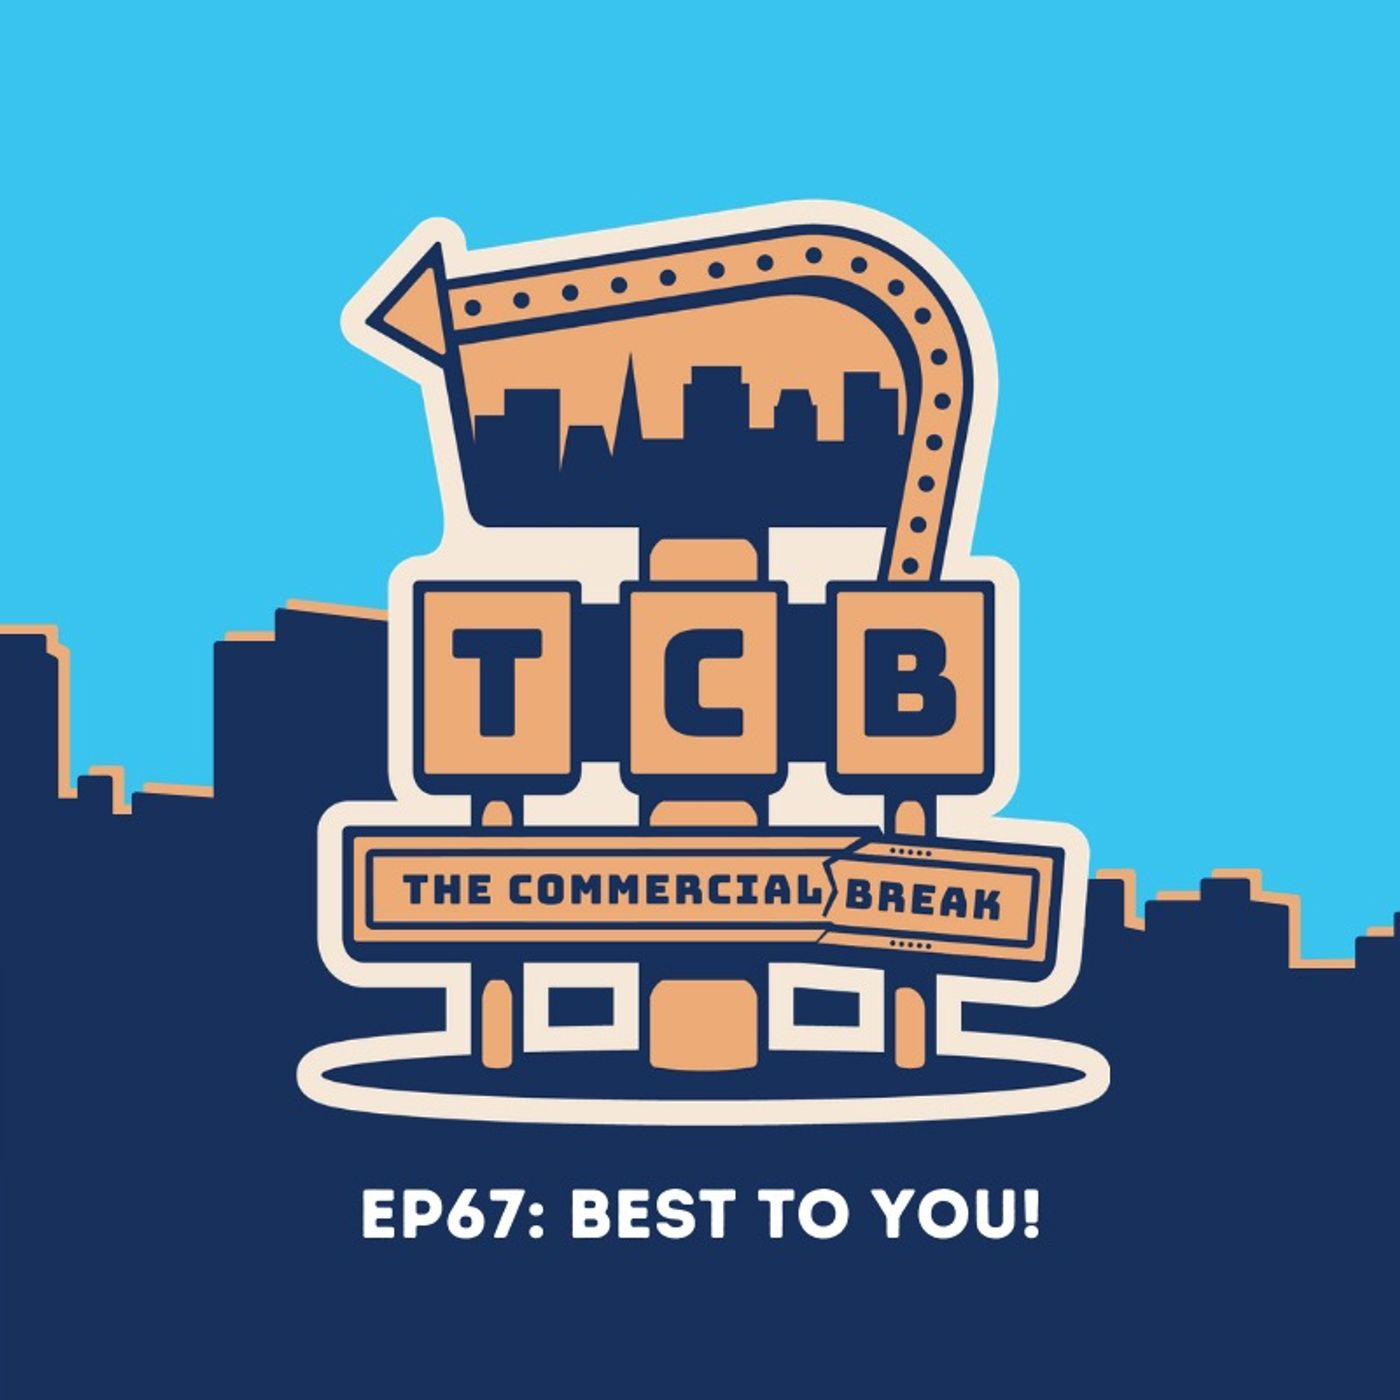 EP67: Best To You!